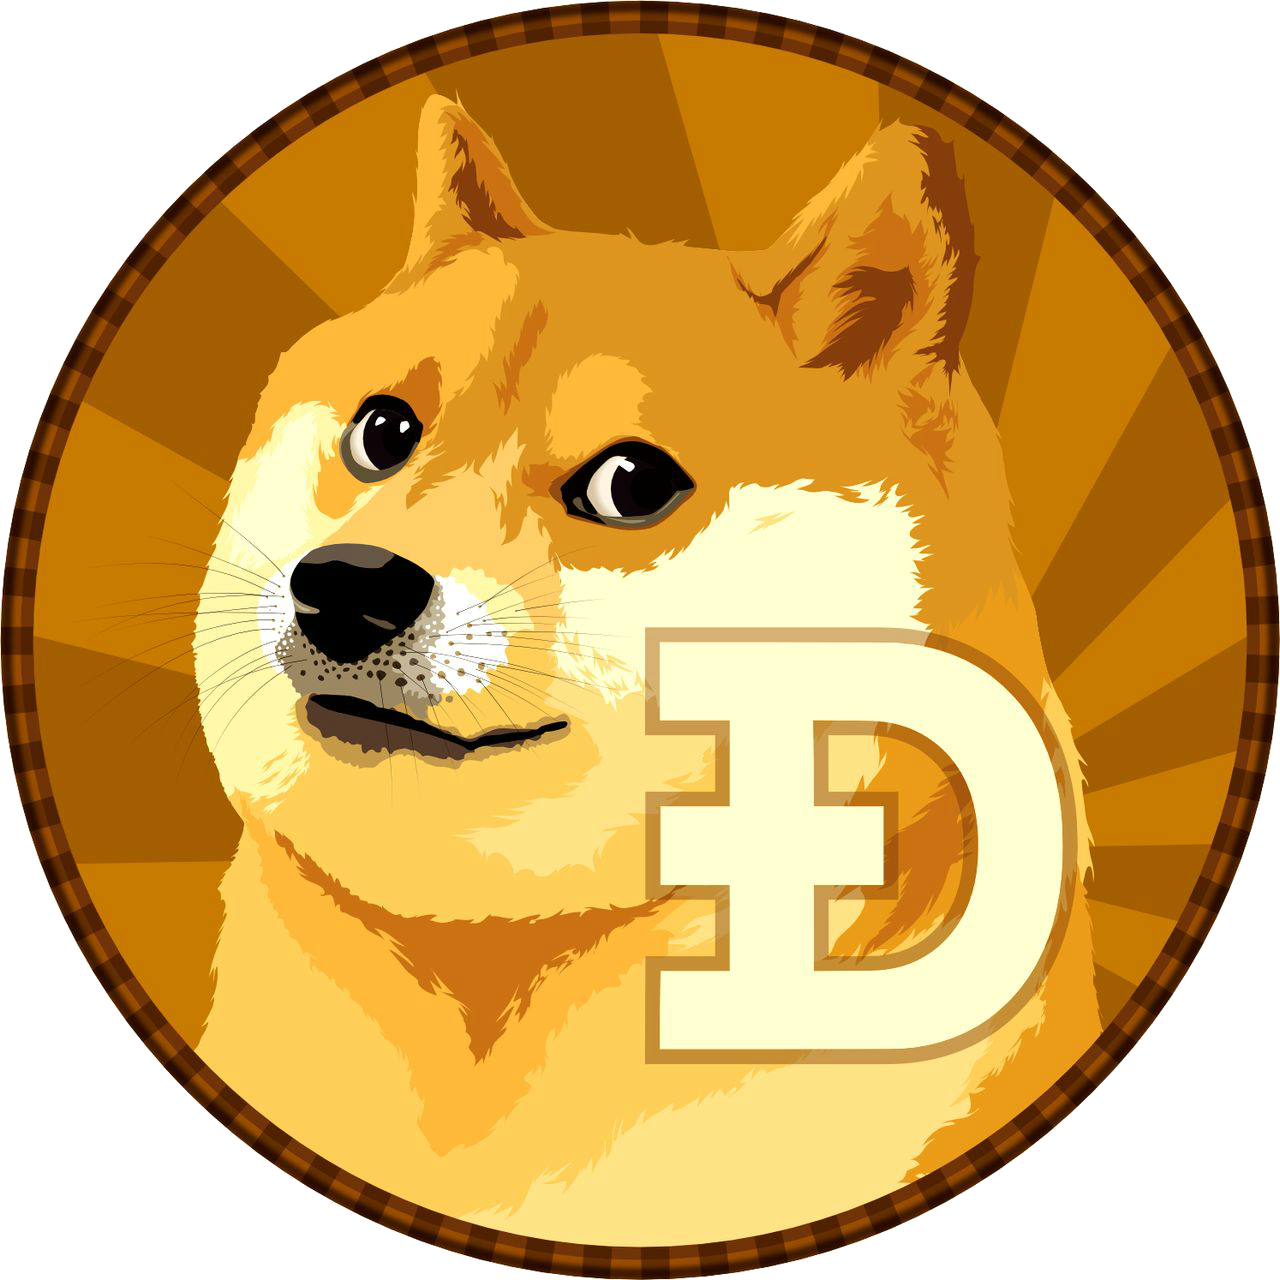 Update) Dogecoin transparent PNG archive needs your help shibes.